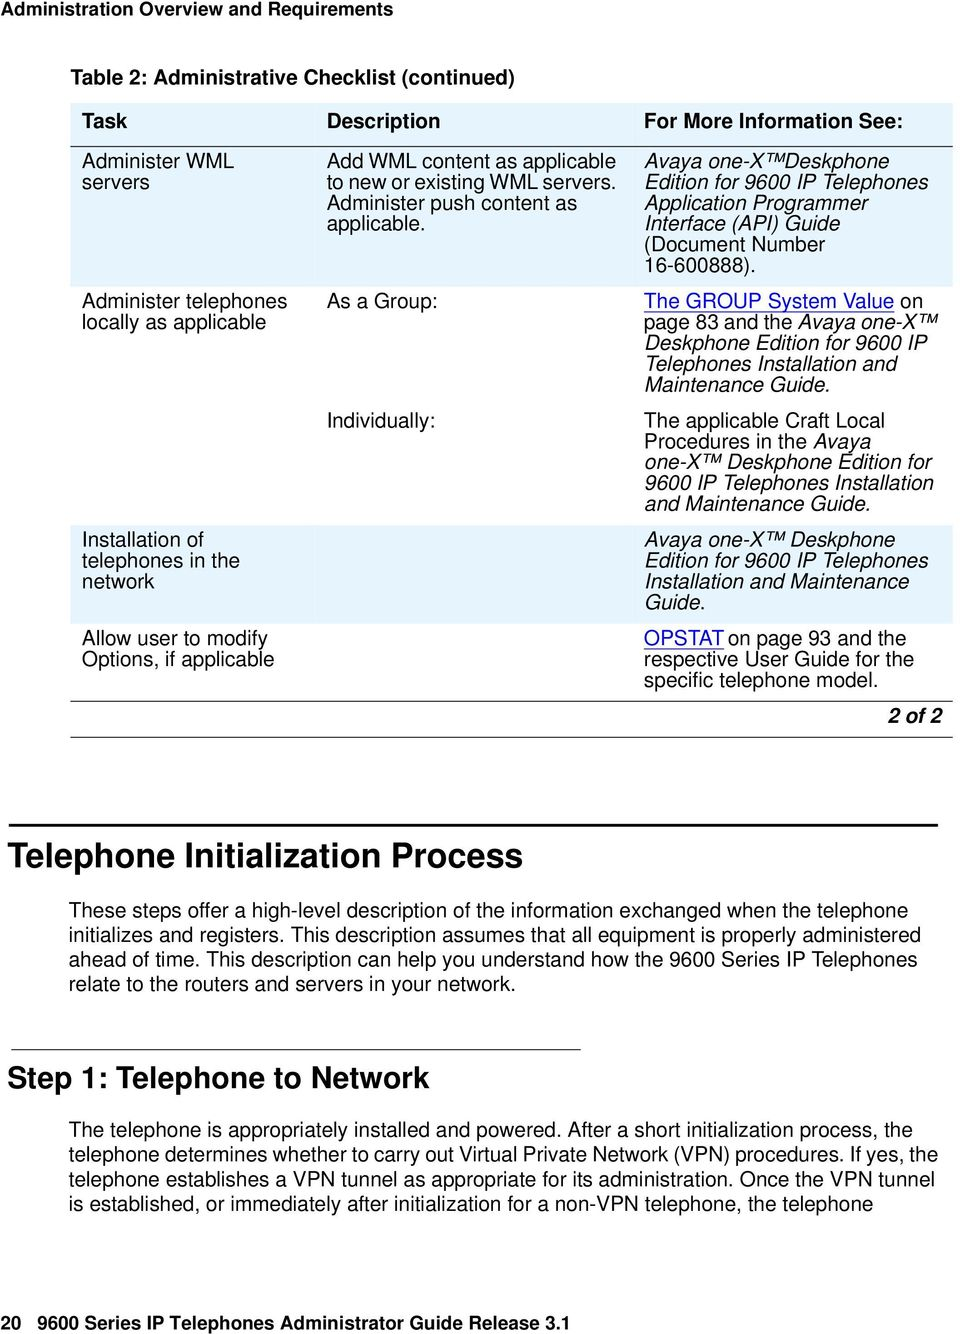 As a Group: Individually: Avaya one-x Deskphone Edition for 9600 IP Telephones Application Programmer Interface (API) Guide (Document Number 16-600888).